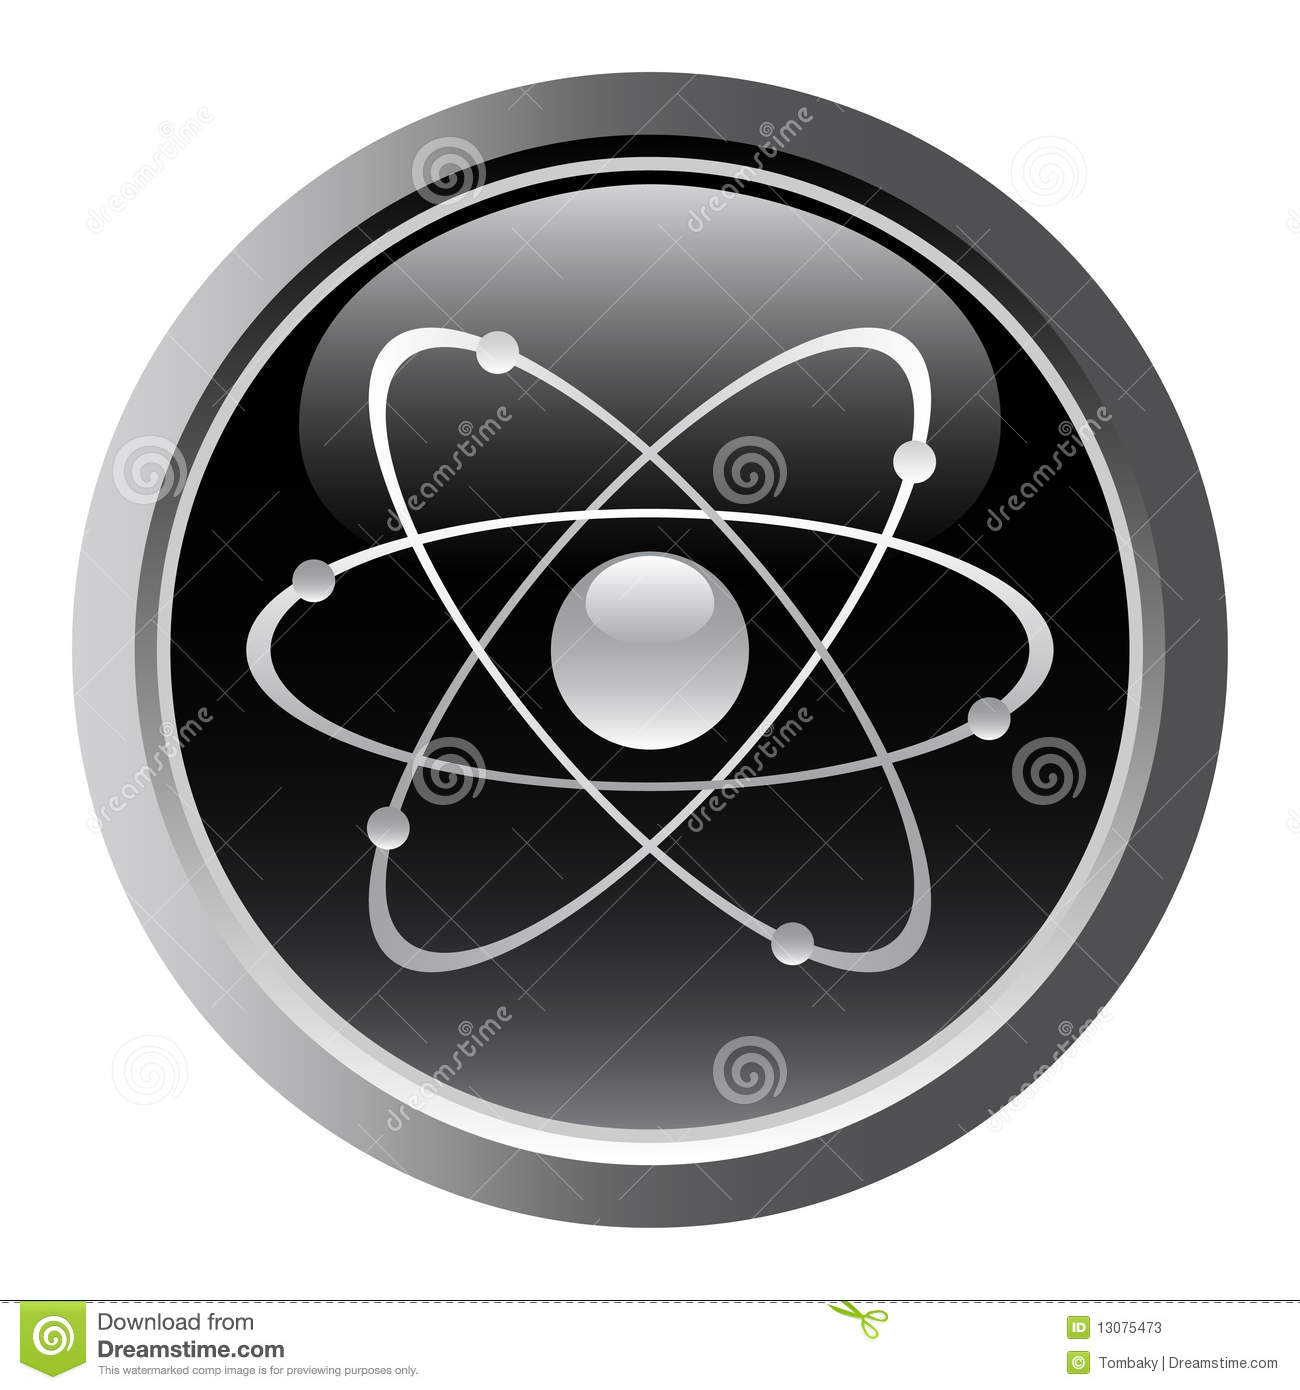 Atomic Symbol Stock Vector Illustration Of Button